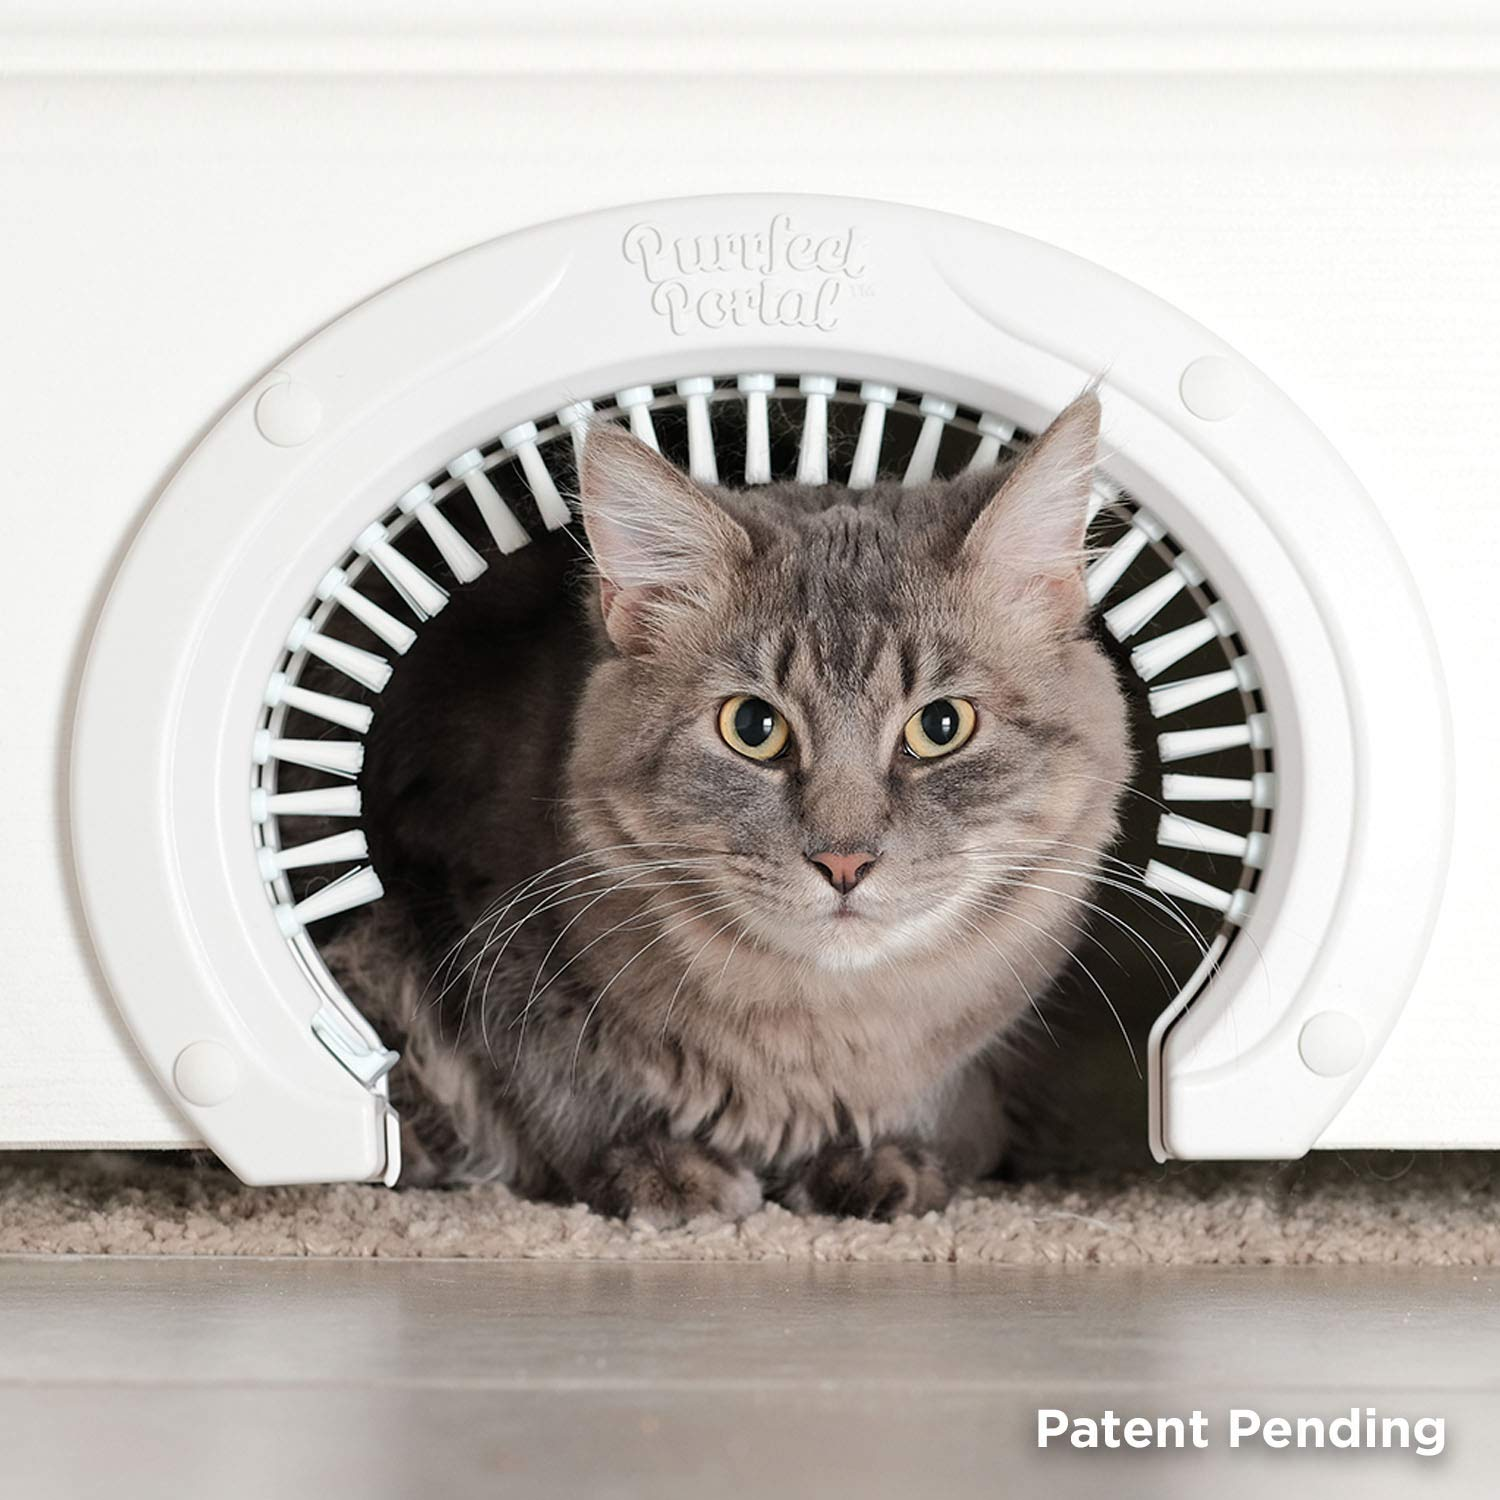 Purrfect Portal Cat Door for Interior Doors with Grooming Brush :: Large Pet Cat Pass for Adult Cats up to 20 Lbs :: Easy to Install Cat Door with Brush w/Detailed Instructions Plus Screws & Screw